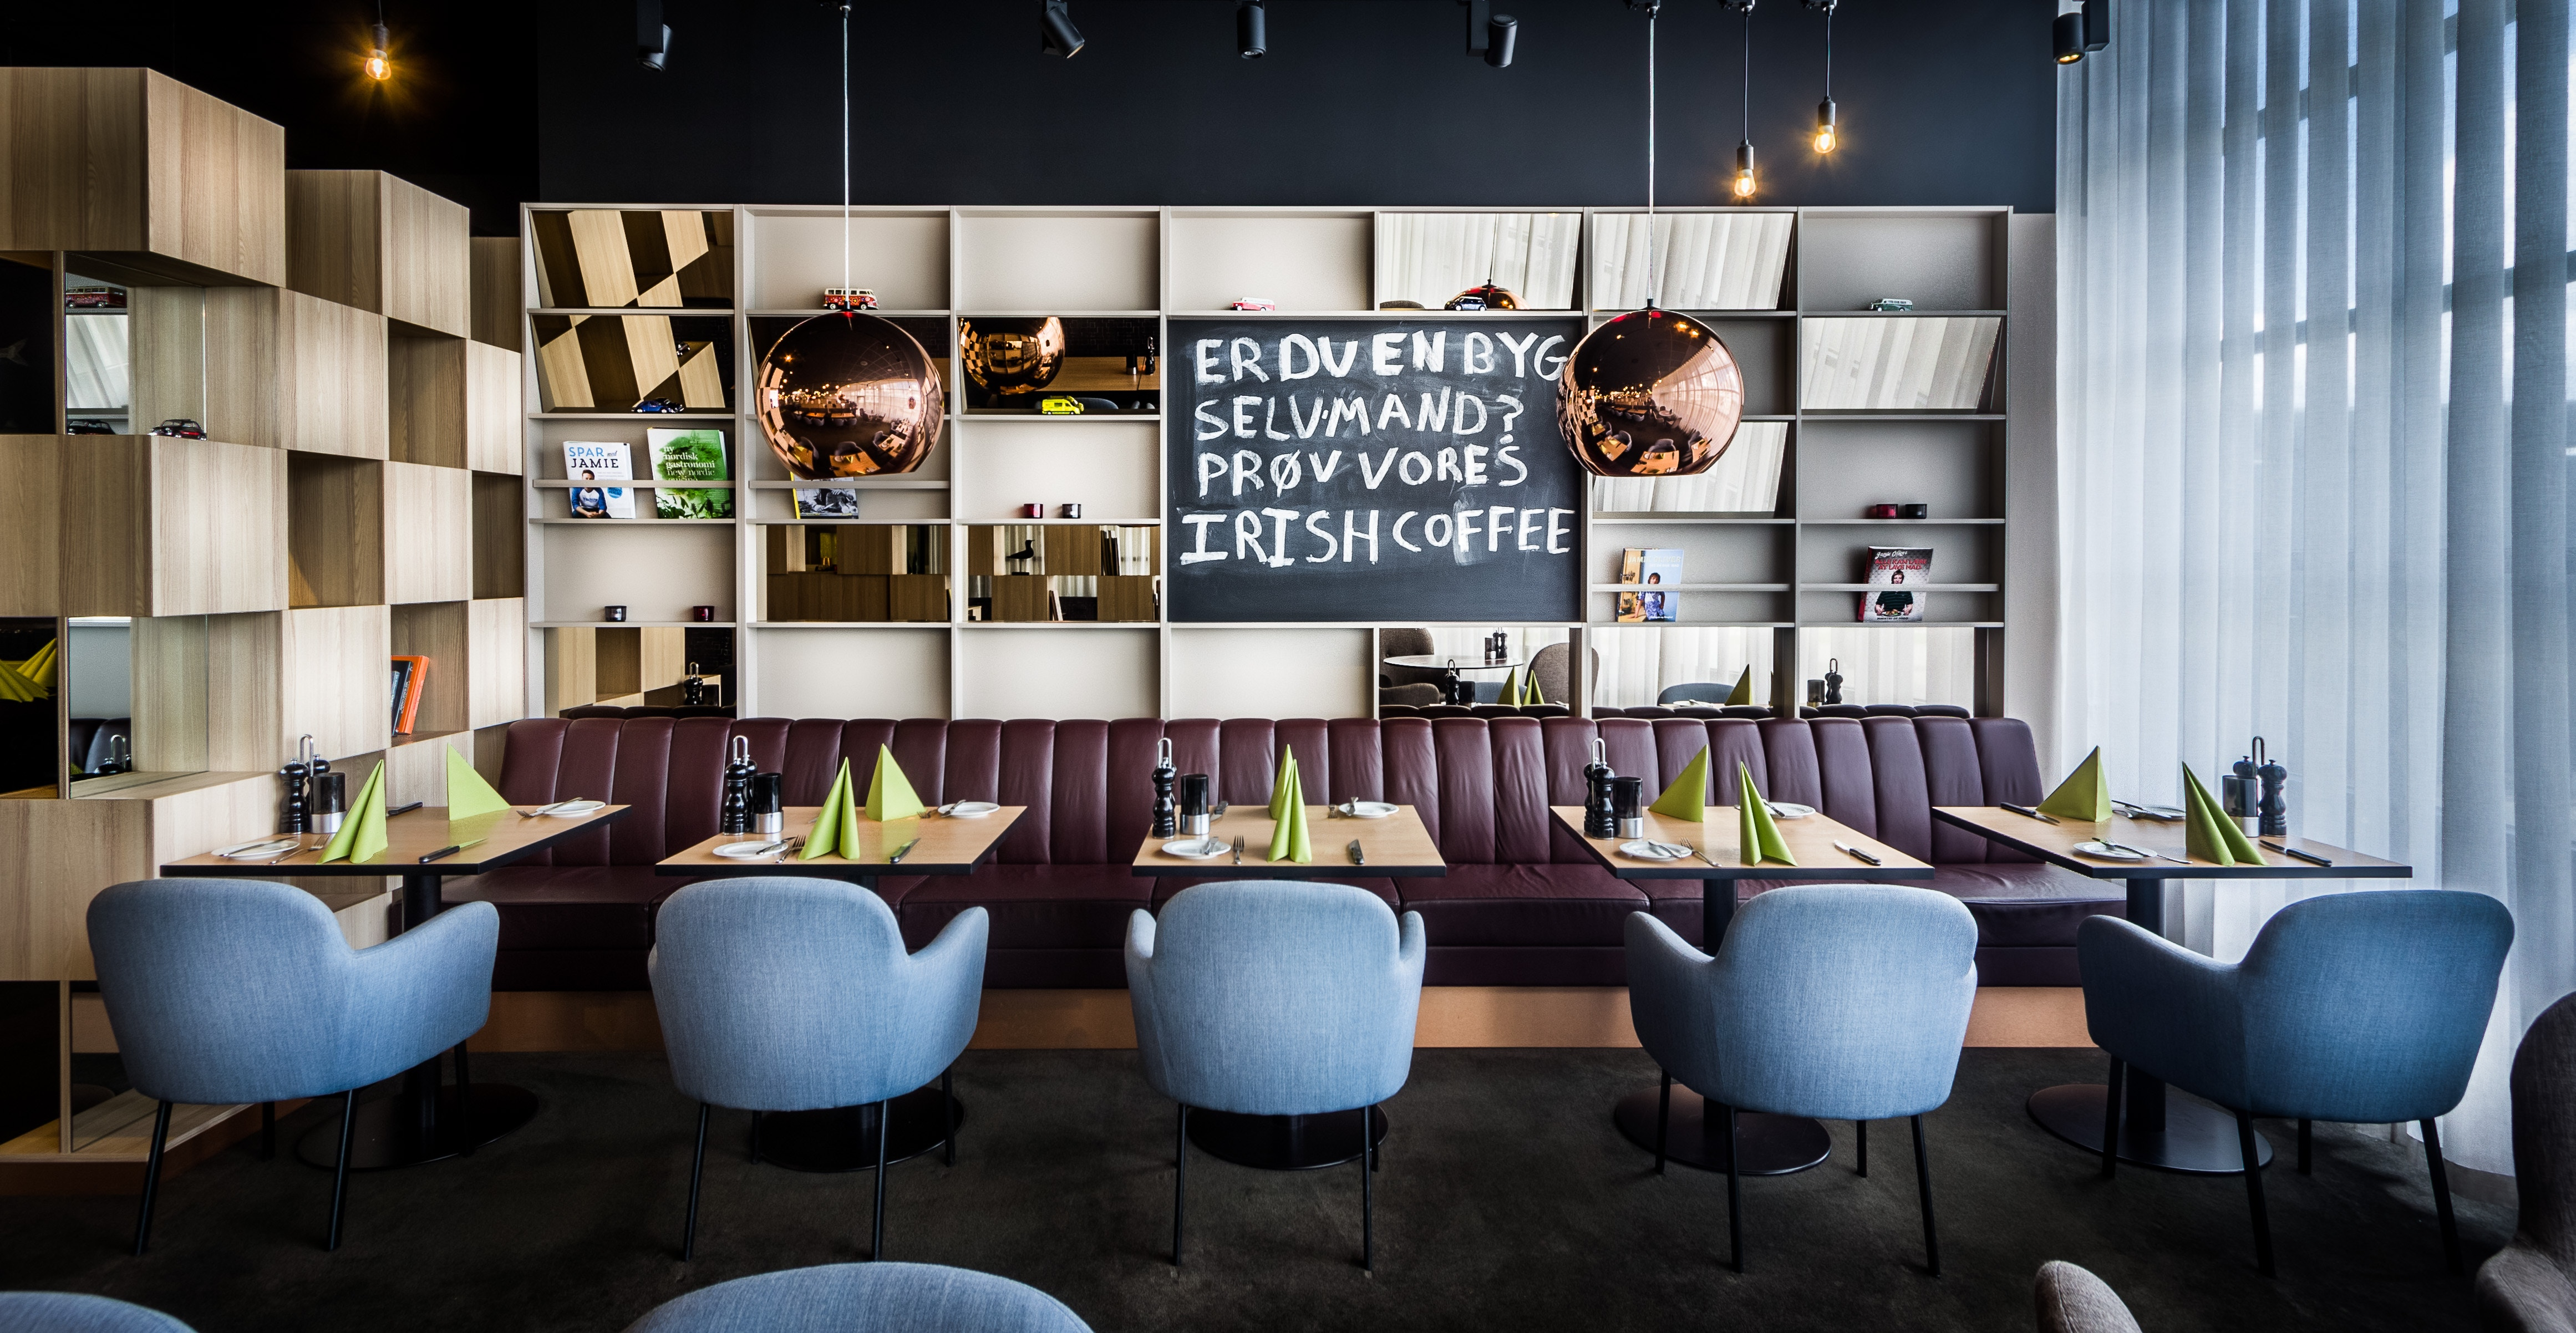 4 Trends in Restaurant Design & Architecture